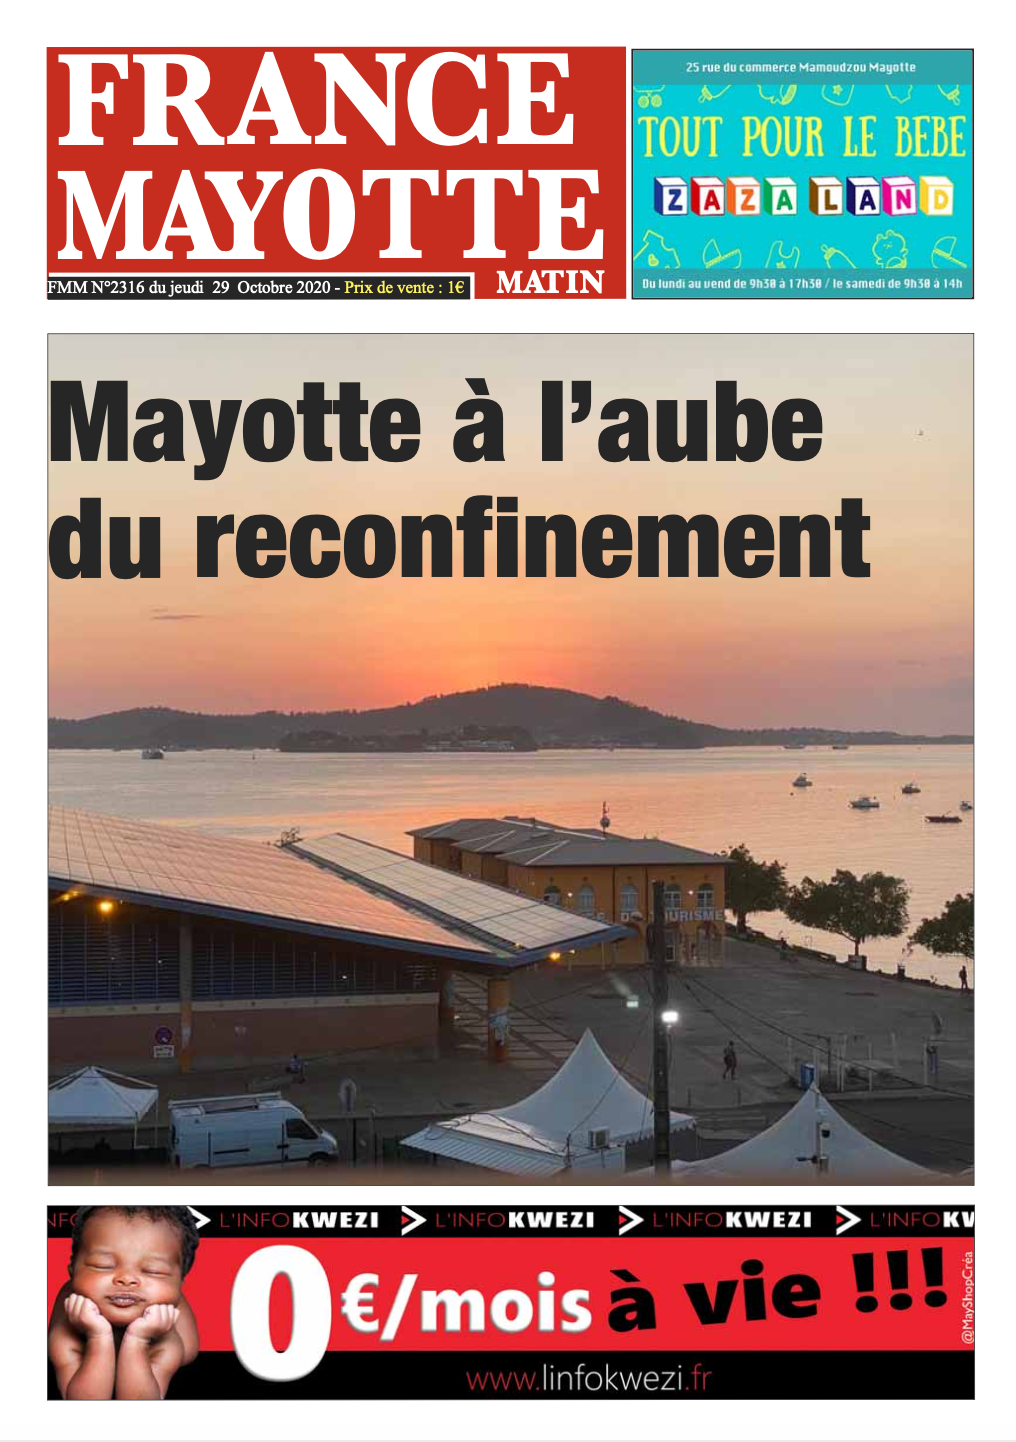 France Mayotte Jeudi 29 octobre 2020